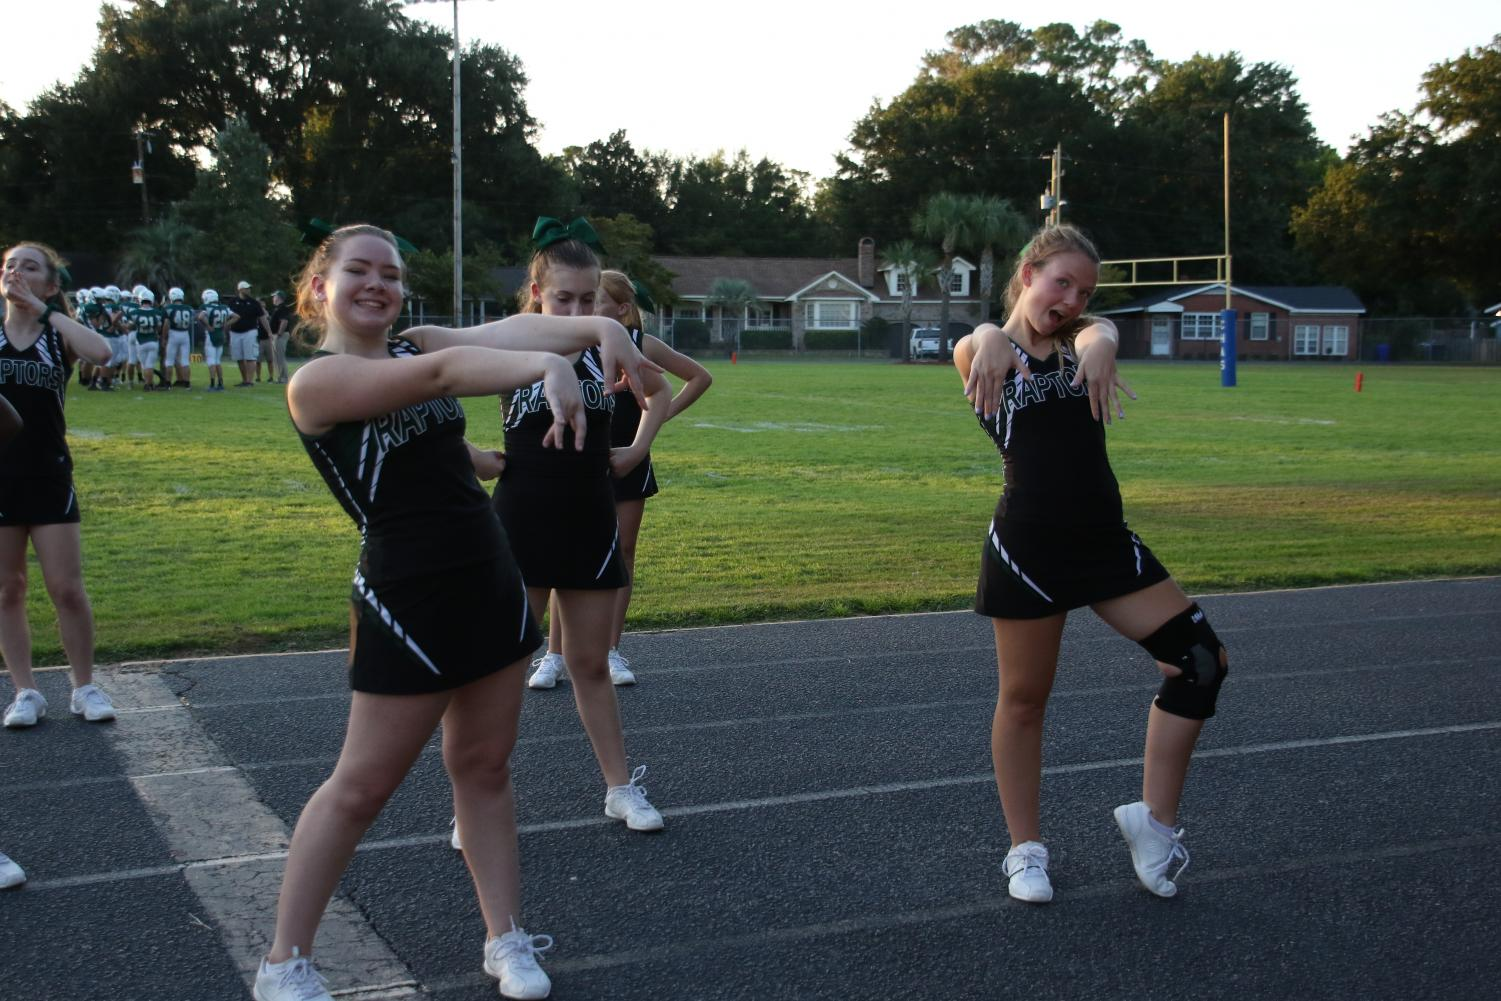 Seniors from the leadership team, Jessica Forney and Sarah Romagnuolo, pose at a raptor football game.